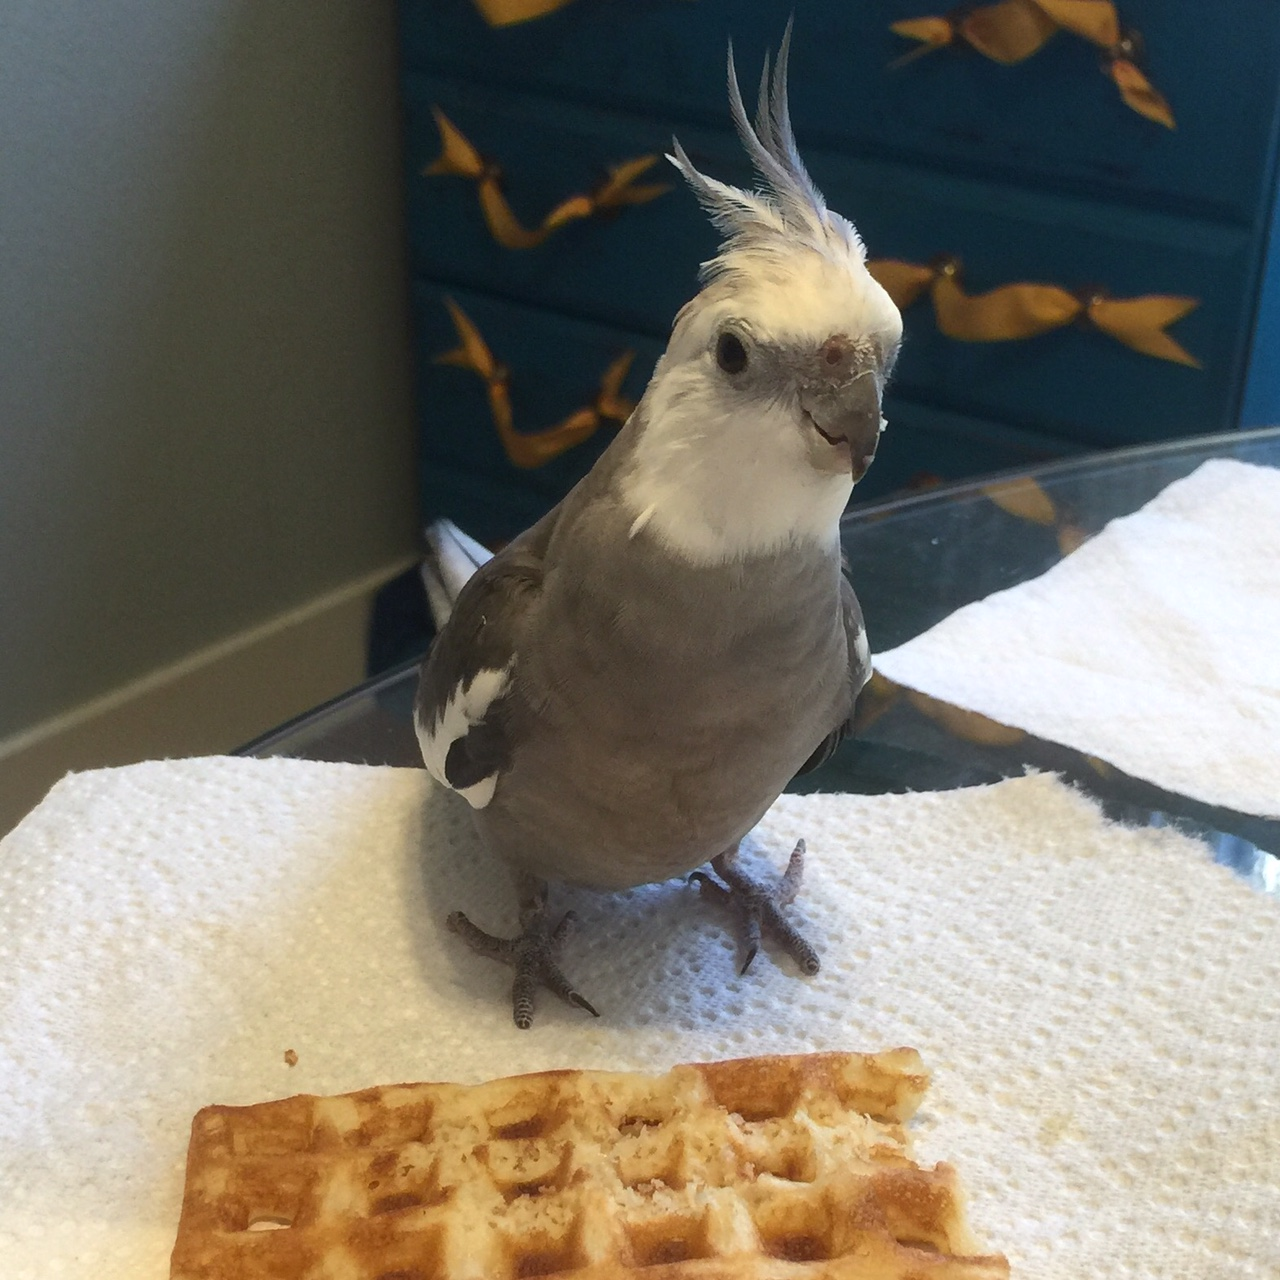 Pearl. Posing by one of his personal Small Chef's organic, freshly toasted waffles.